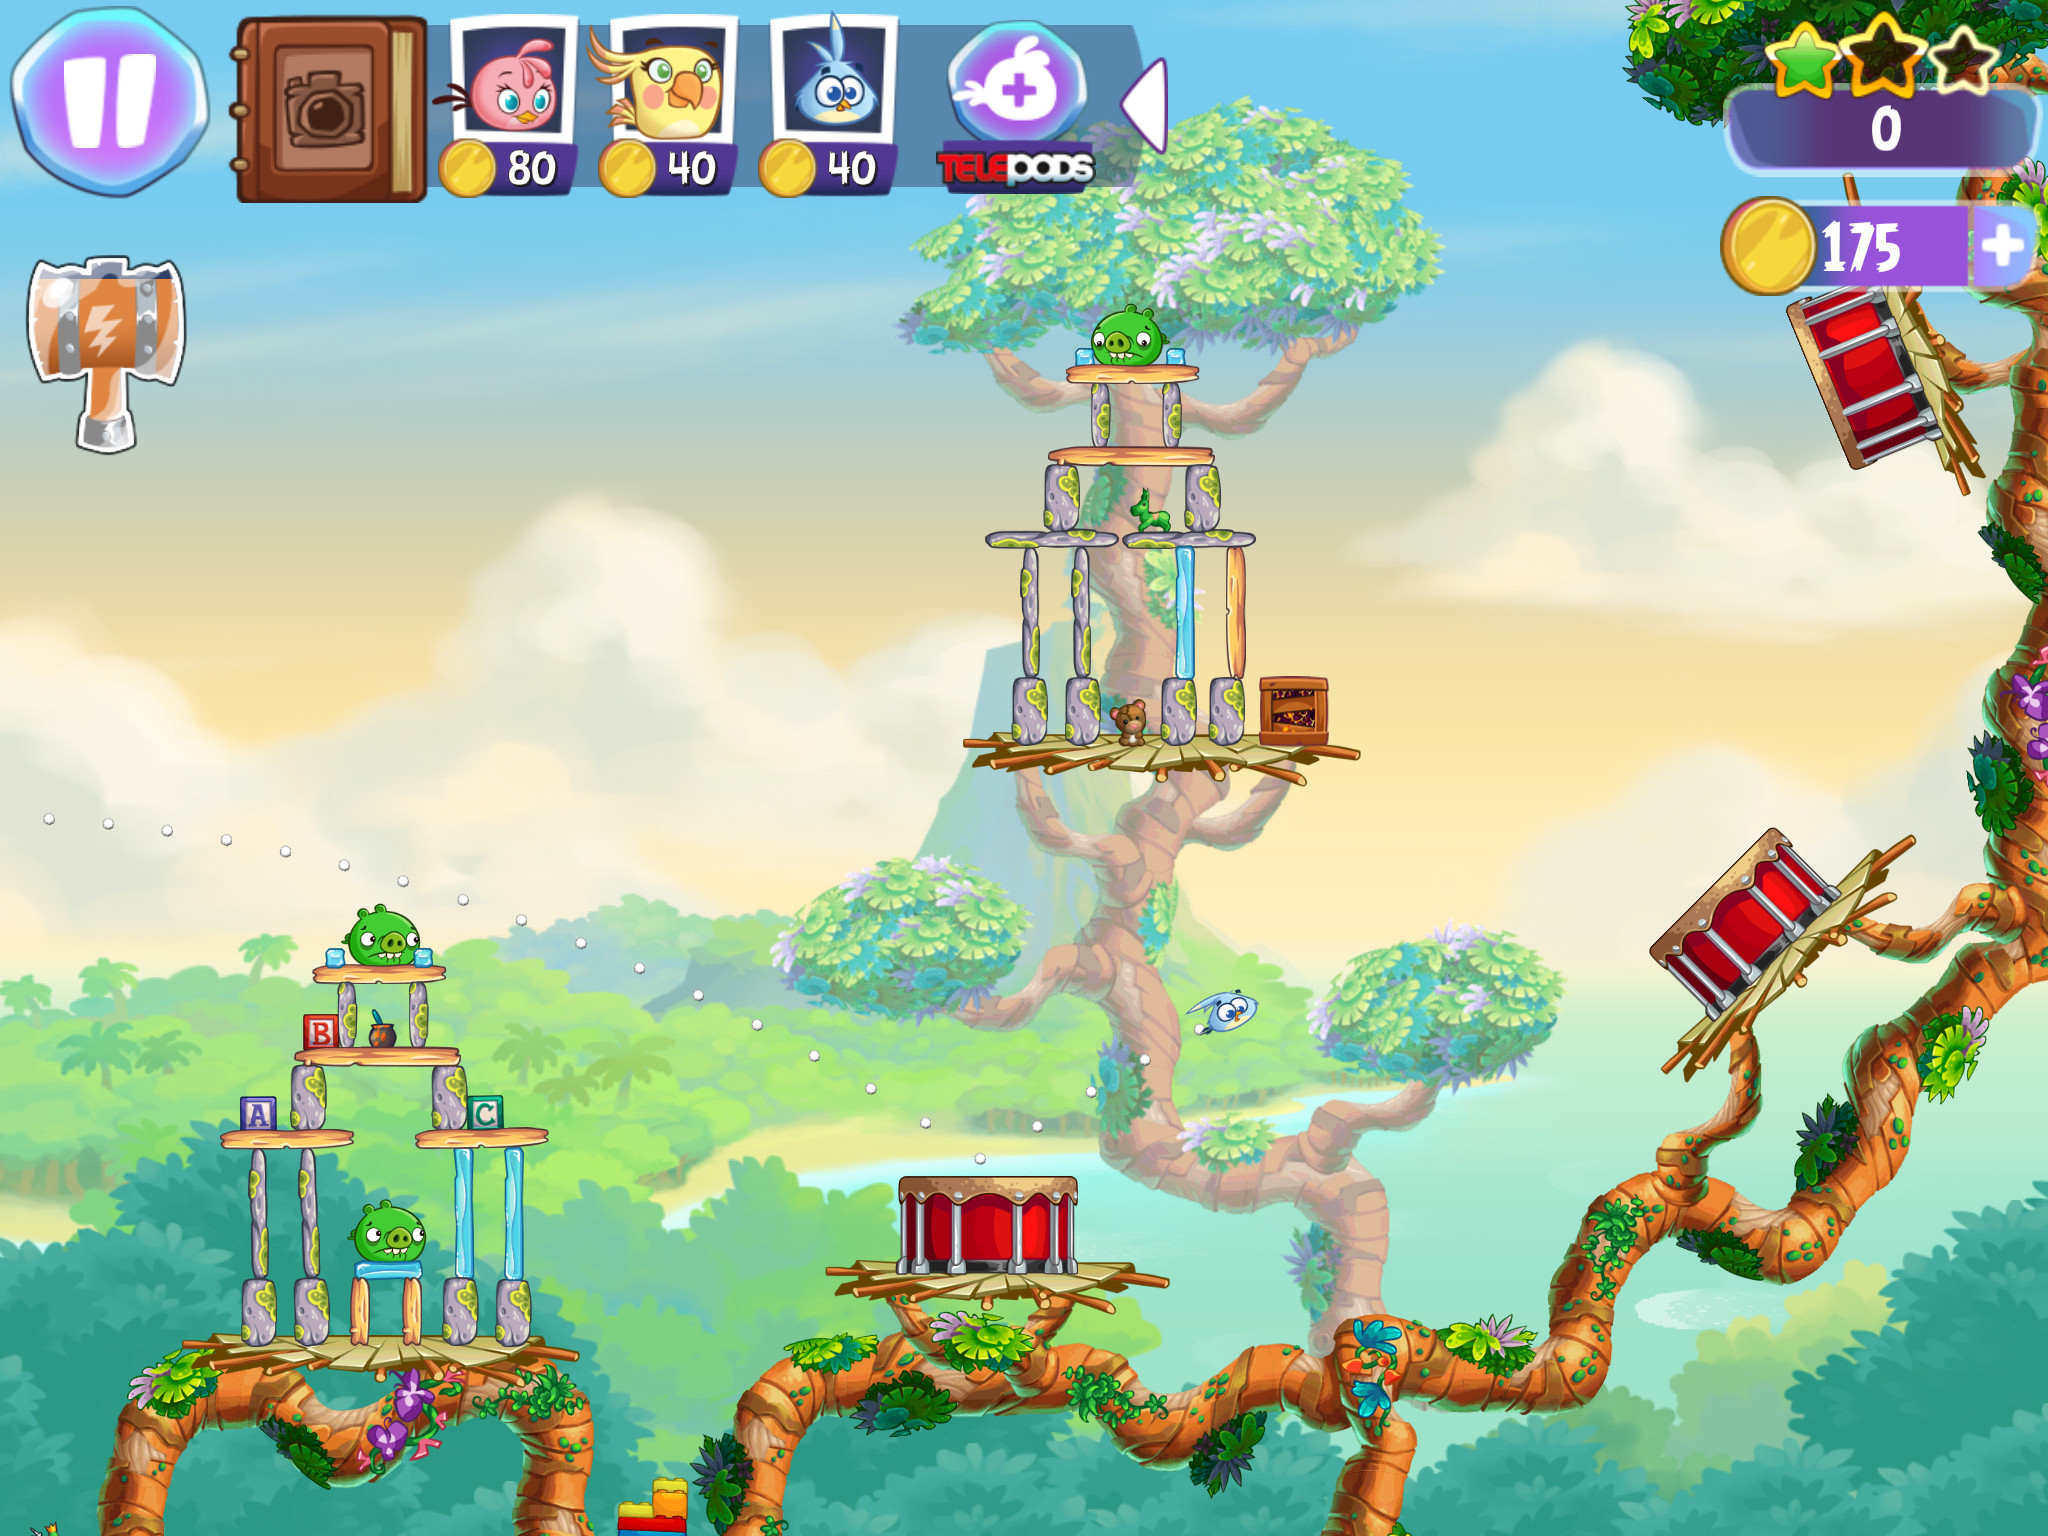 Angry Birds Stella, the latest in the Angry Birds series, is out right now for iOS and Android